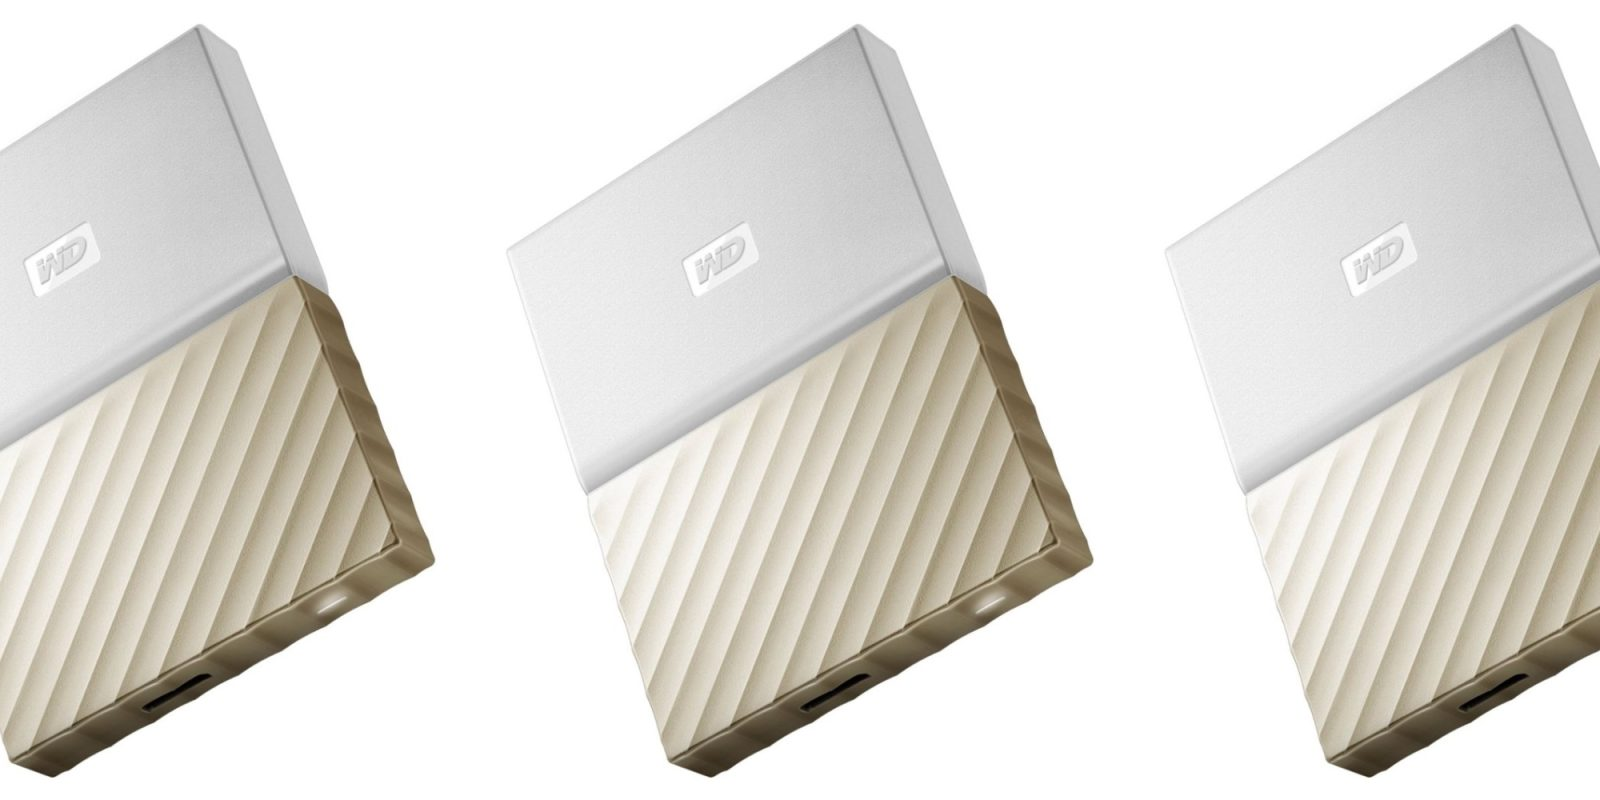 WD's 1TB My Passport Ultra USB 3.0 Hard Drive drops to new Amazon low at $45